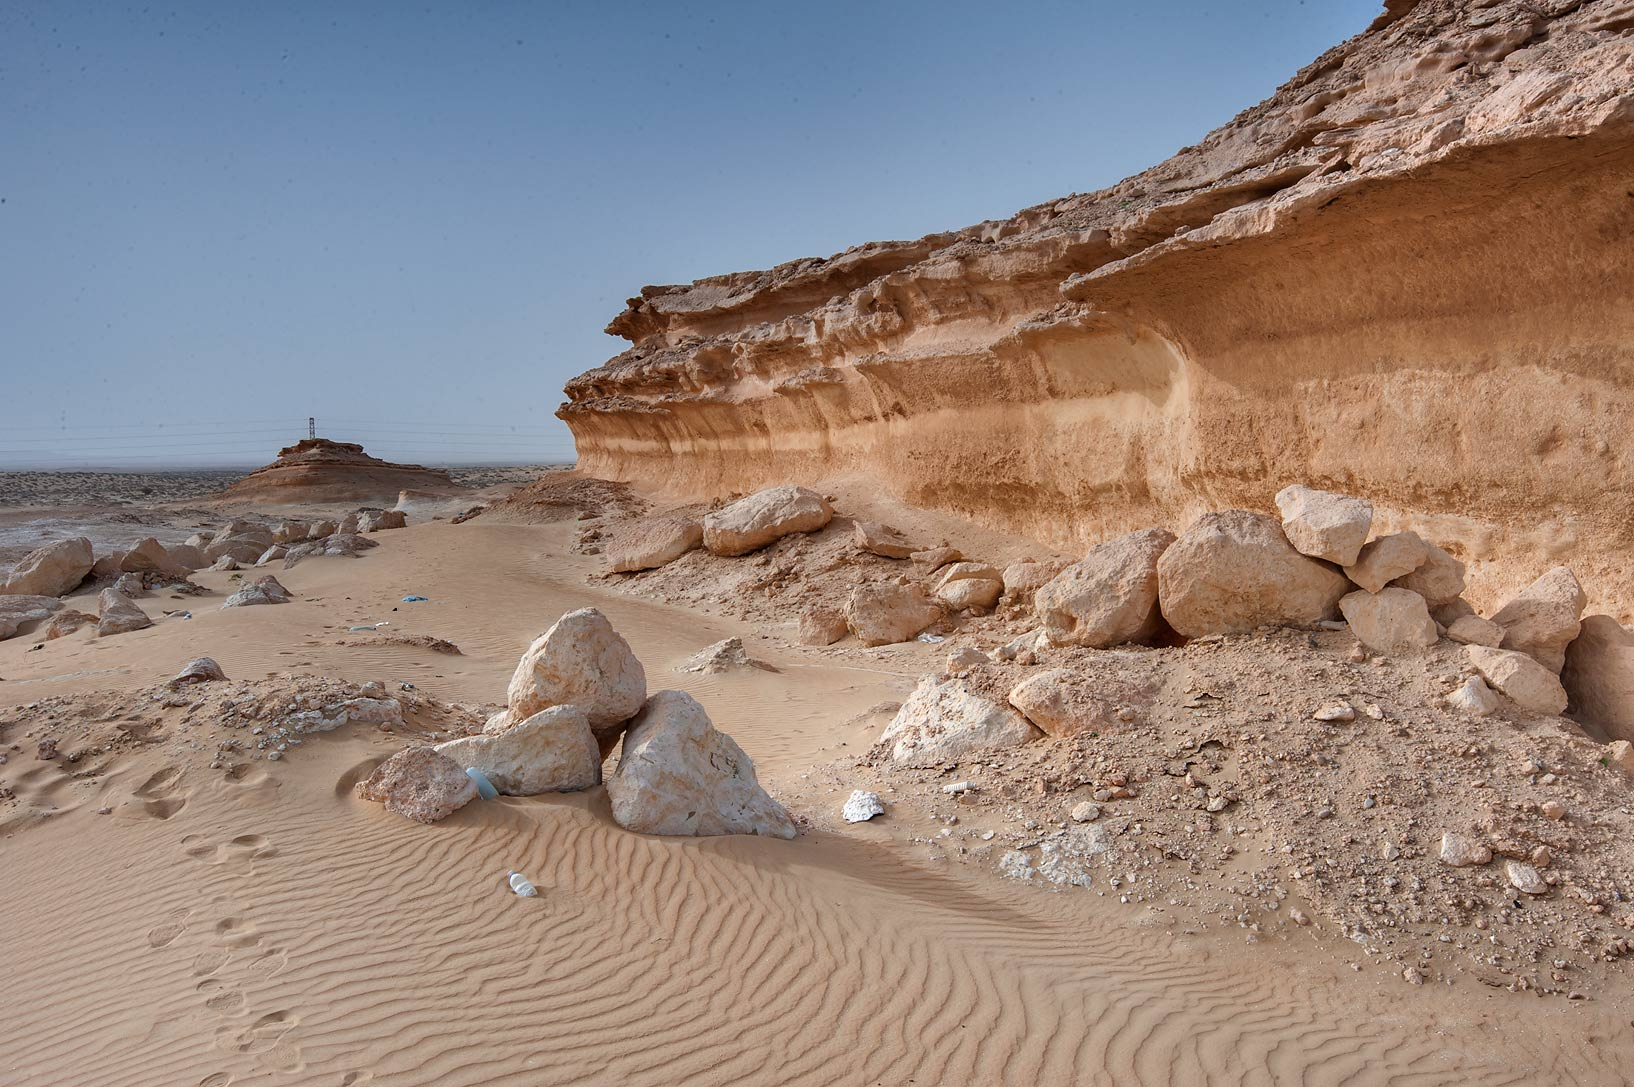 Foot of limestone cliffs near Salwa Rd. in area of Rawdat Ekdaim. Southern Qatar